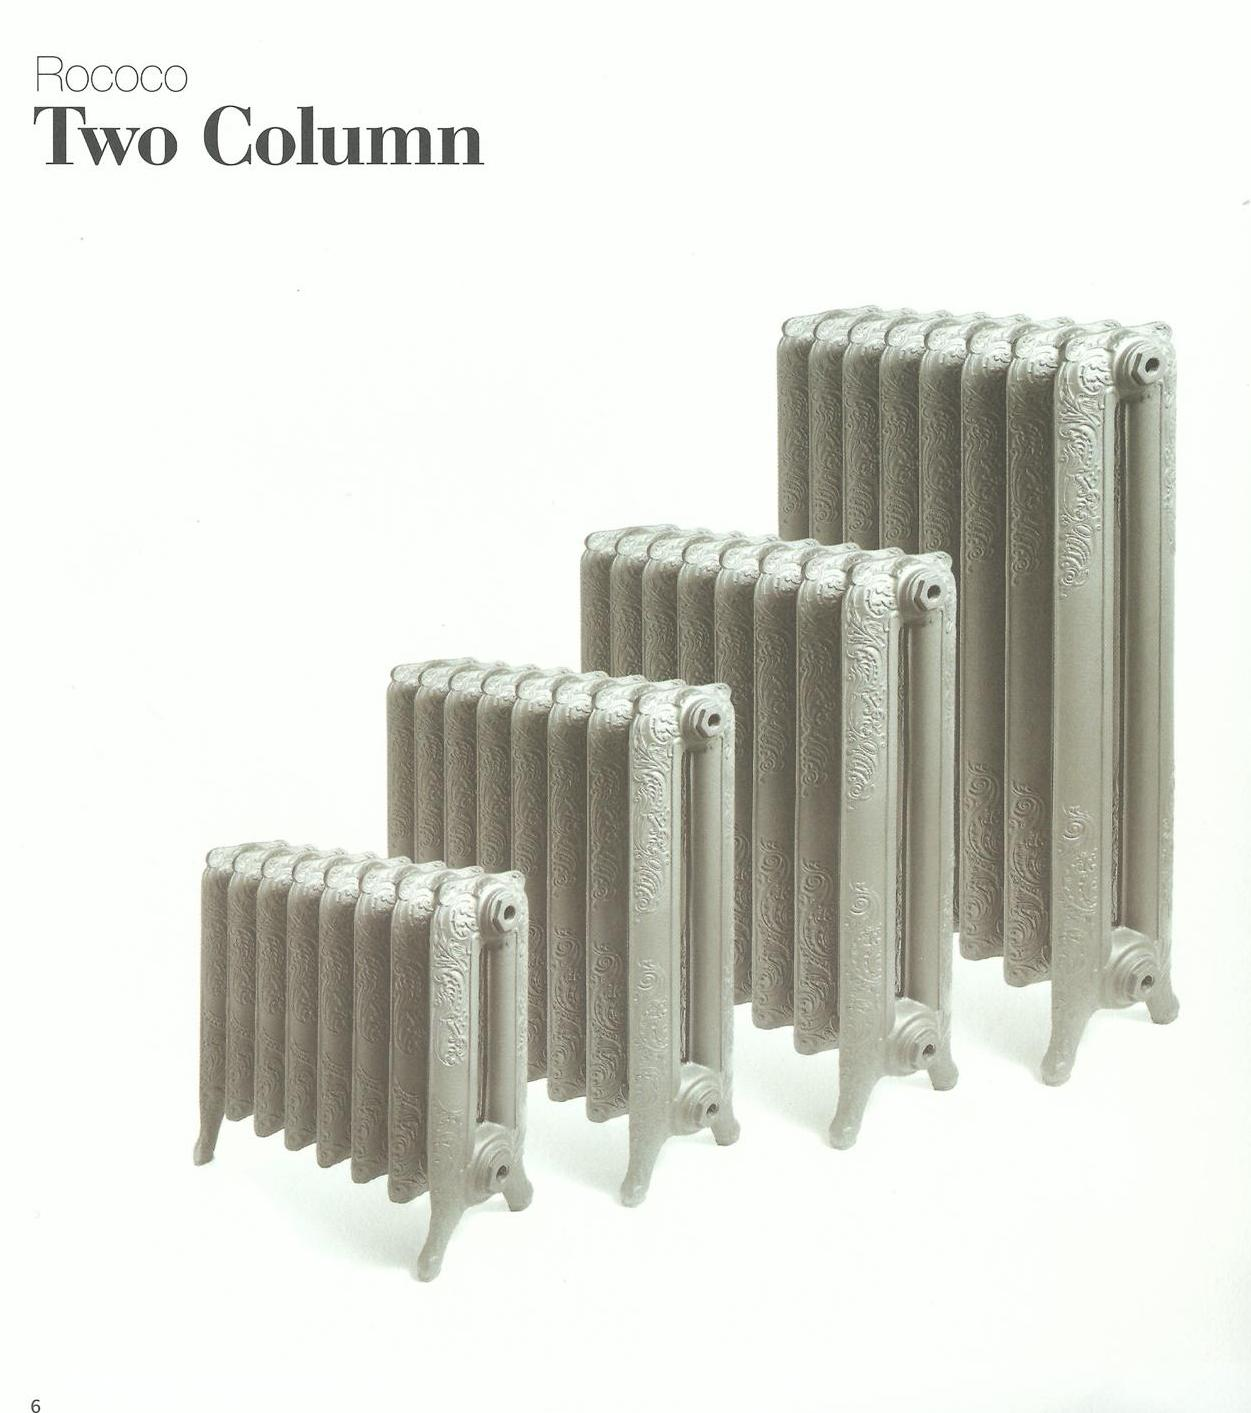 Gusseisenheizelement Two Column